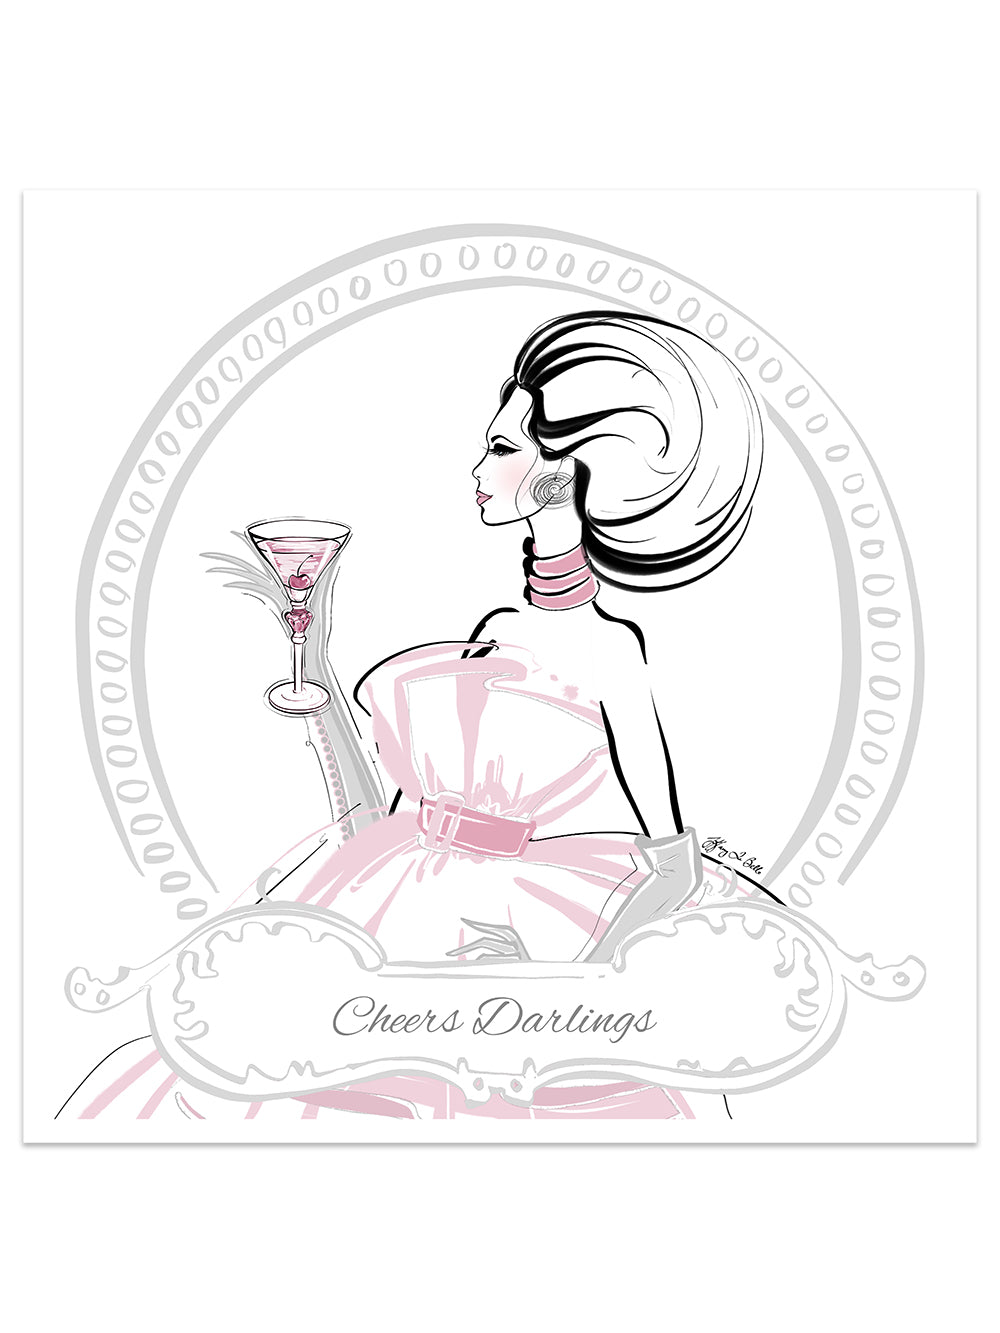 Cheers Darlings - Illustration - Limited Edition Print - Tiffany La Belle